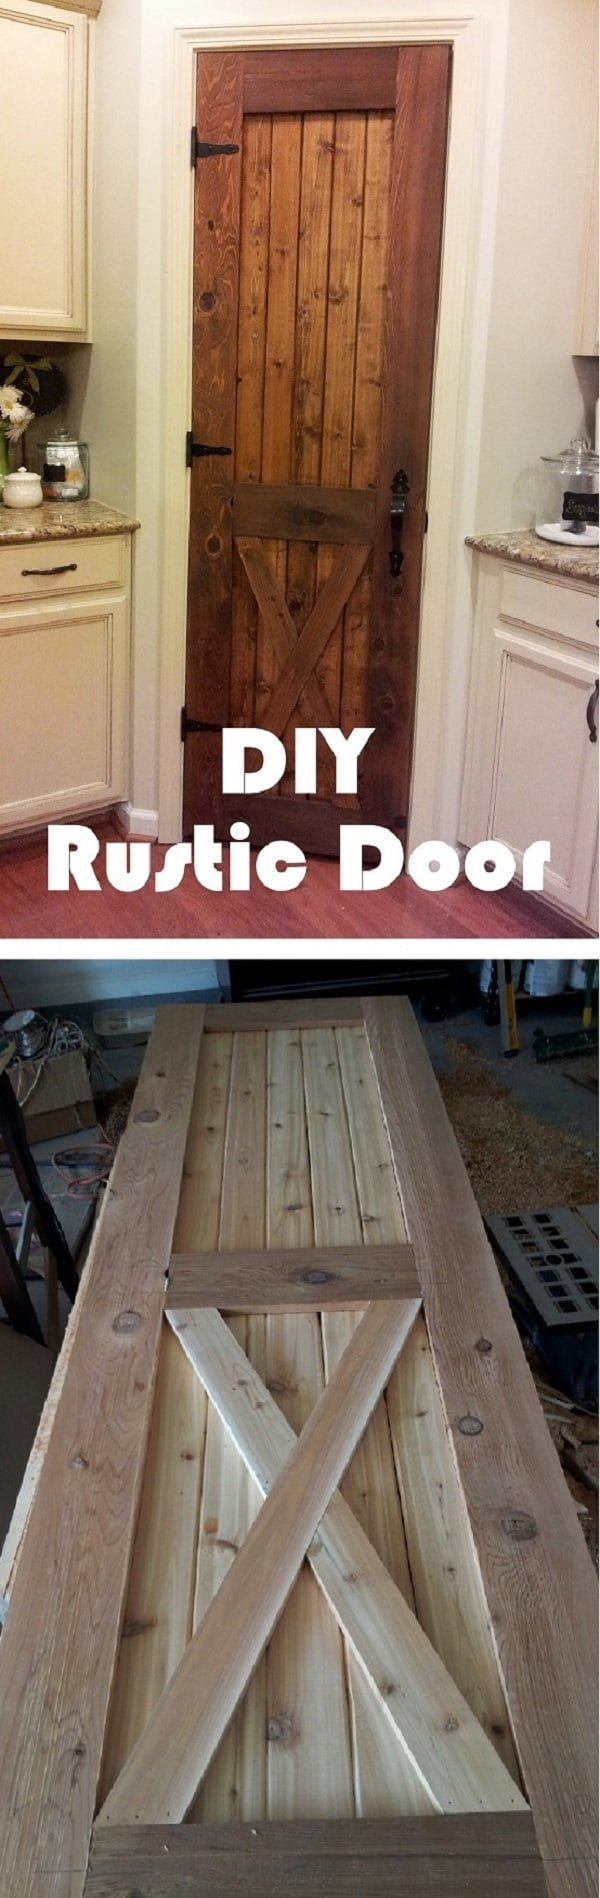 How to make DIY rustic pantry door